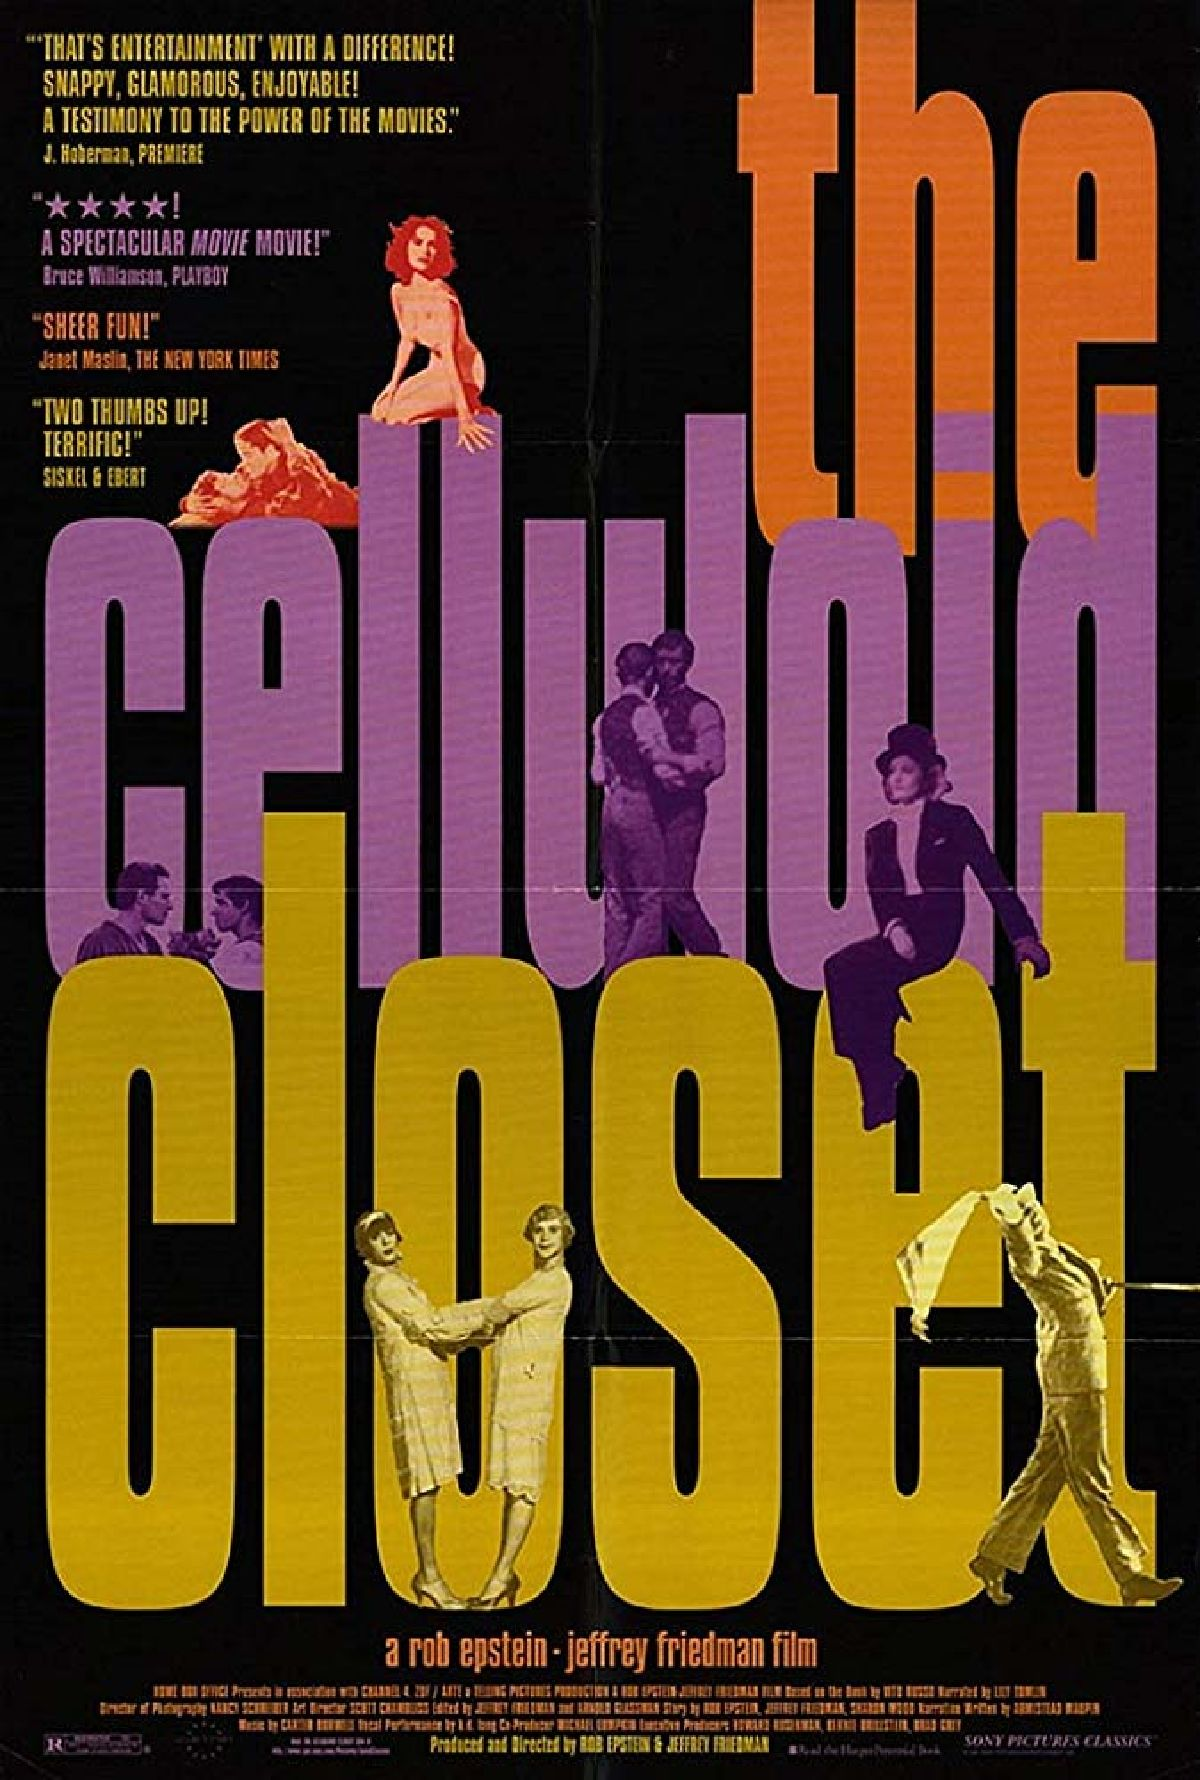 'The Celluloid Closet' movie poster